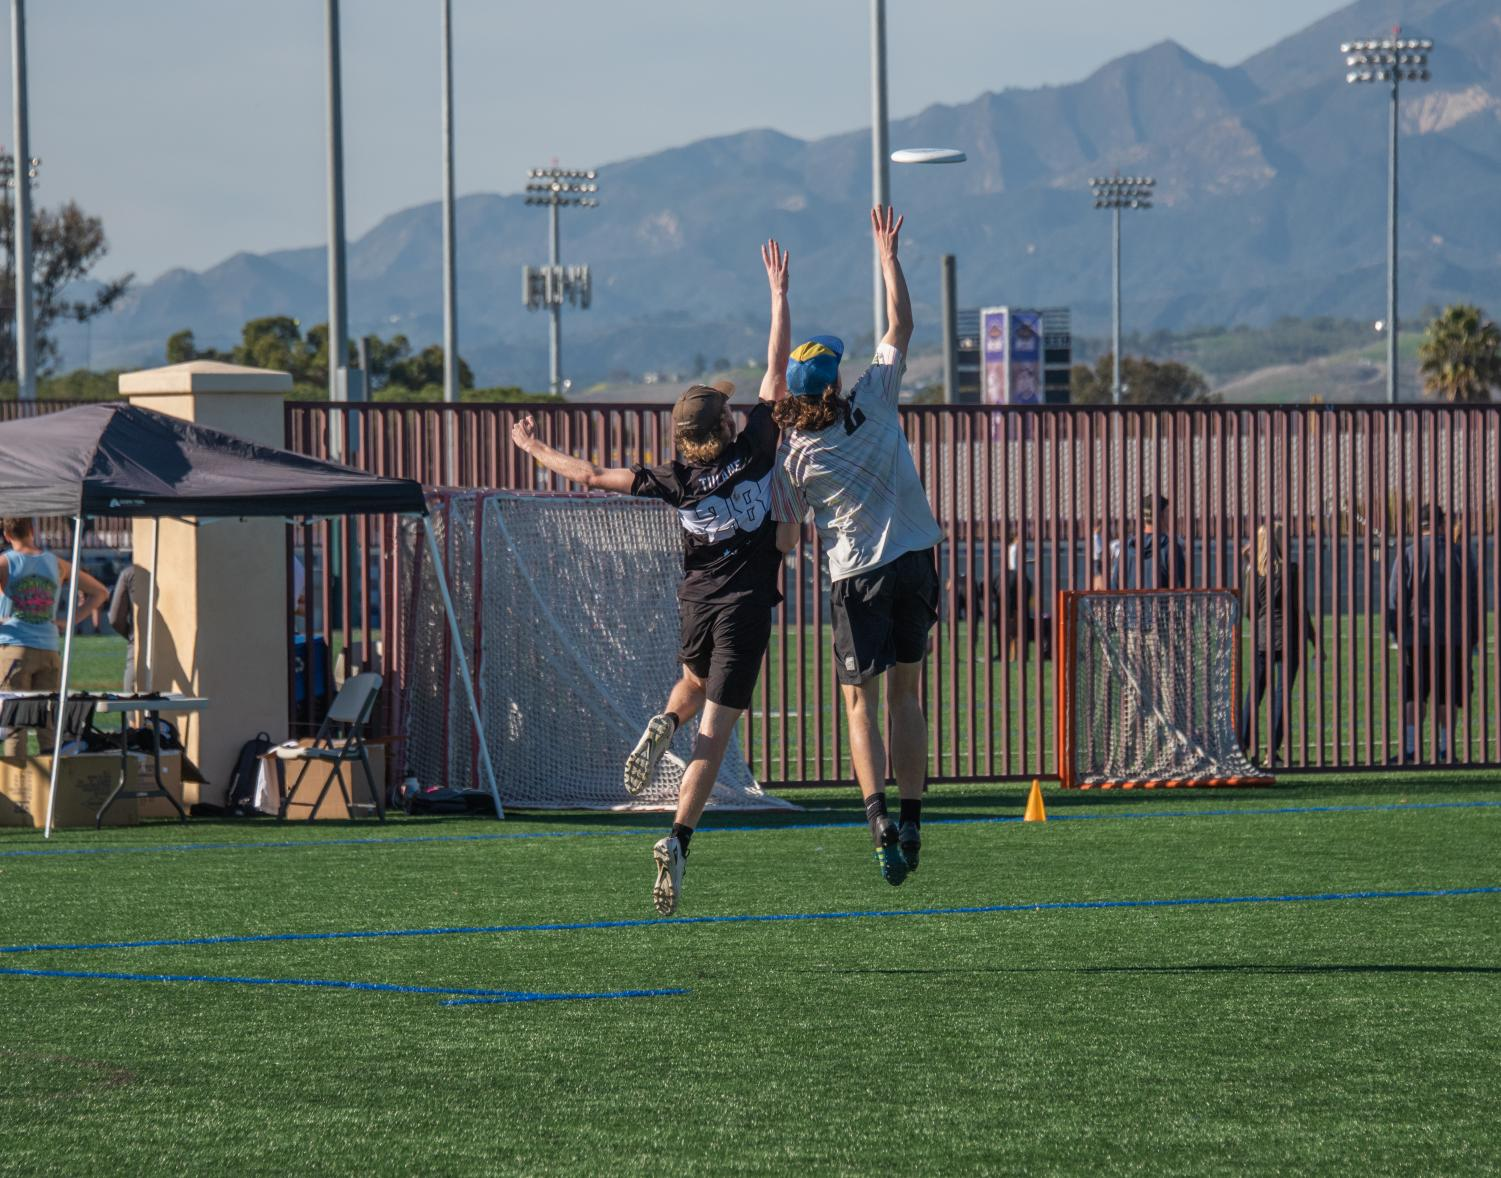 Two players jump for the disc.